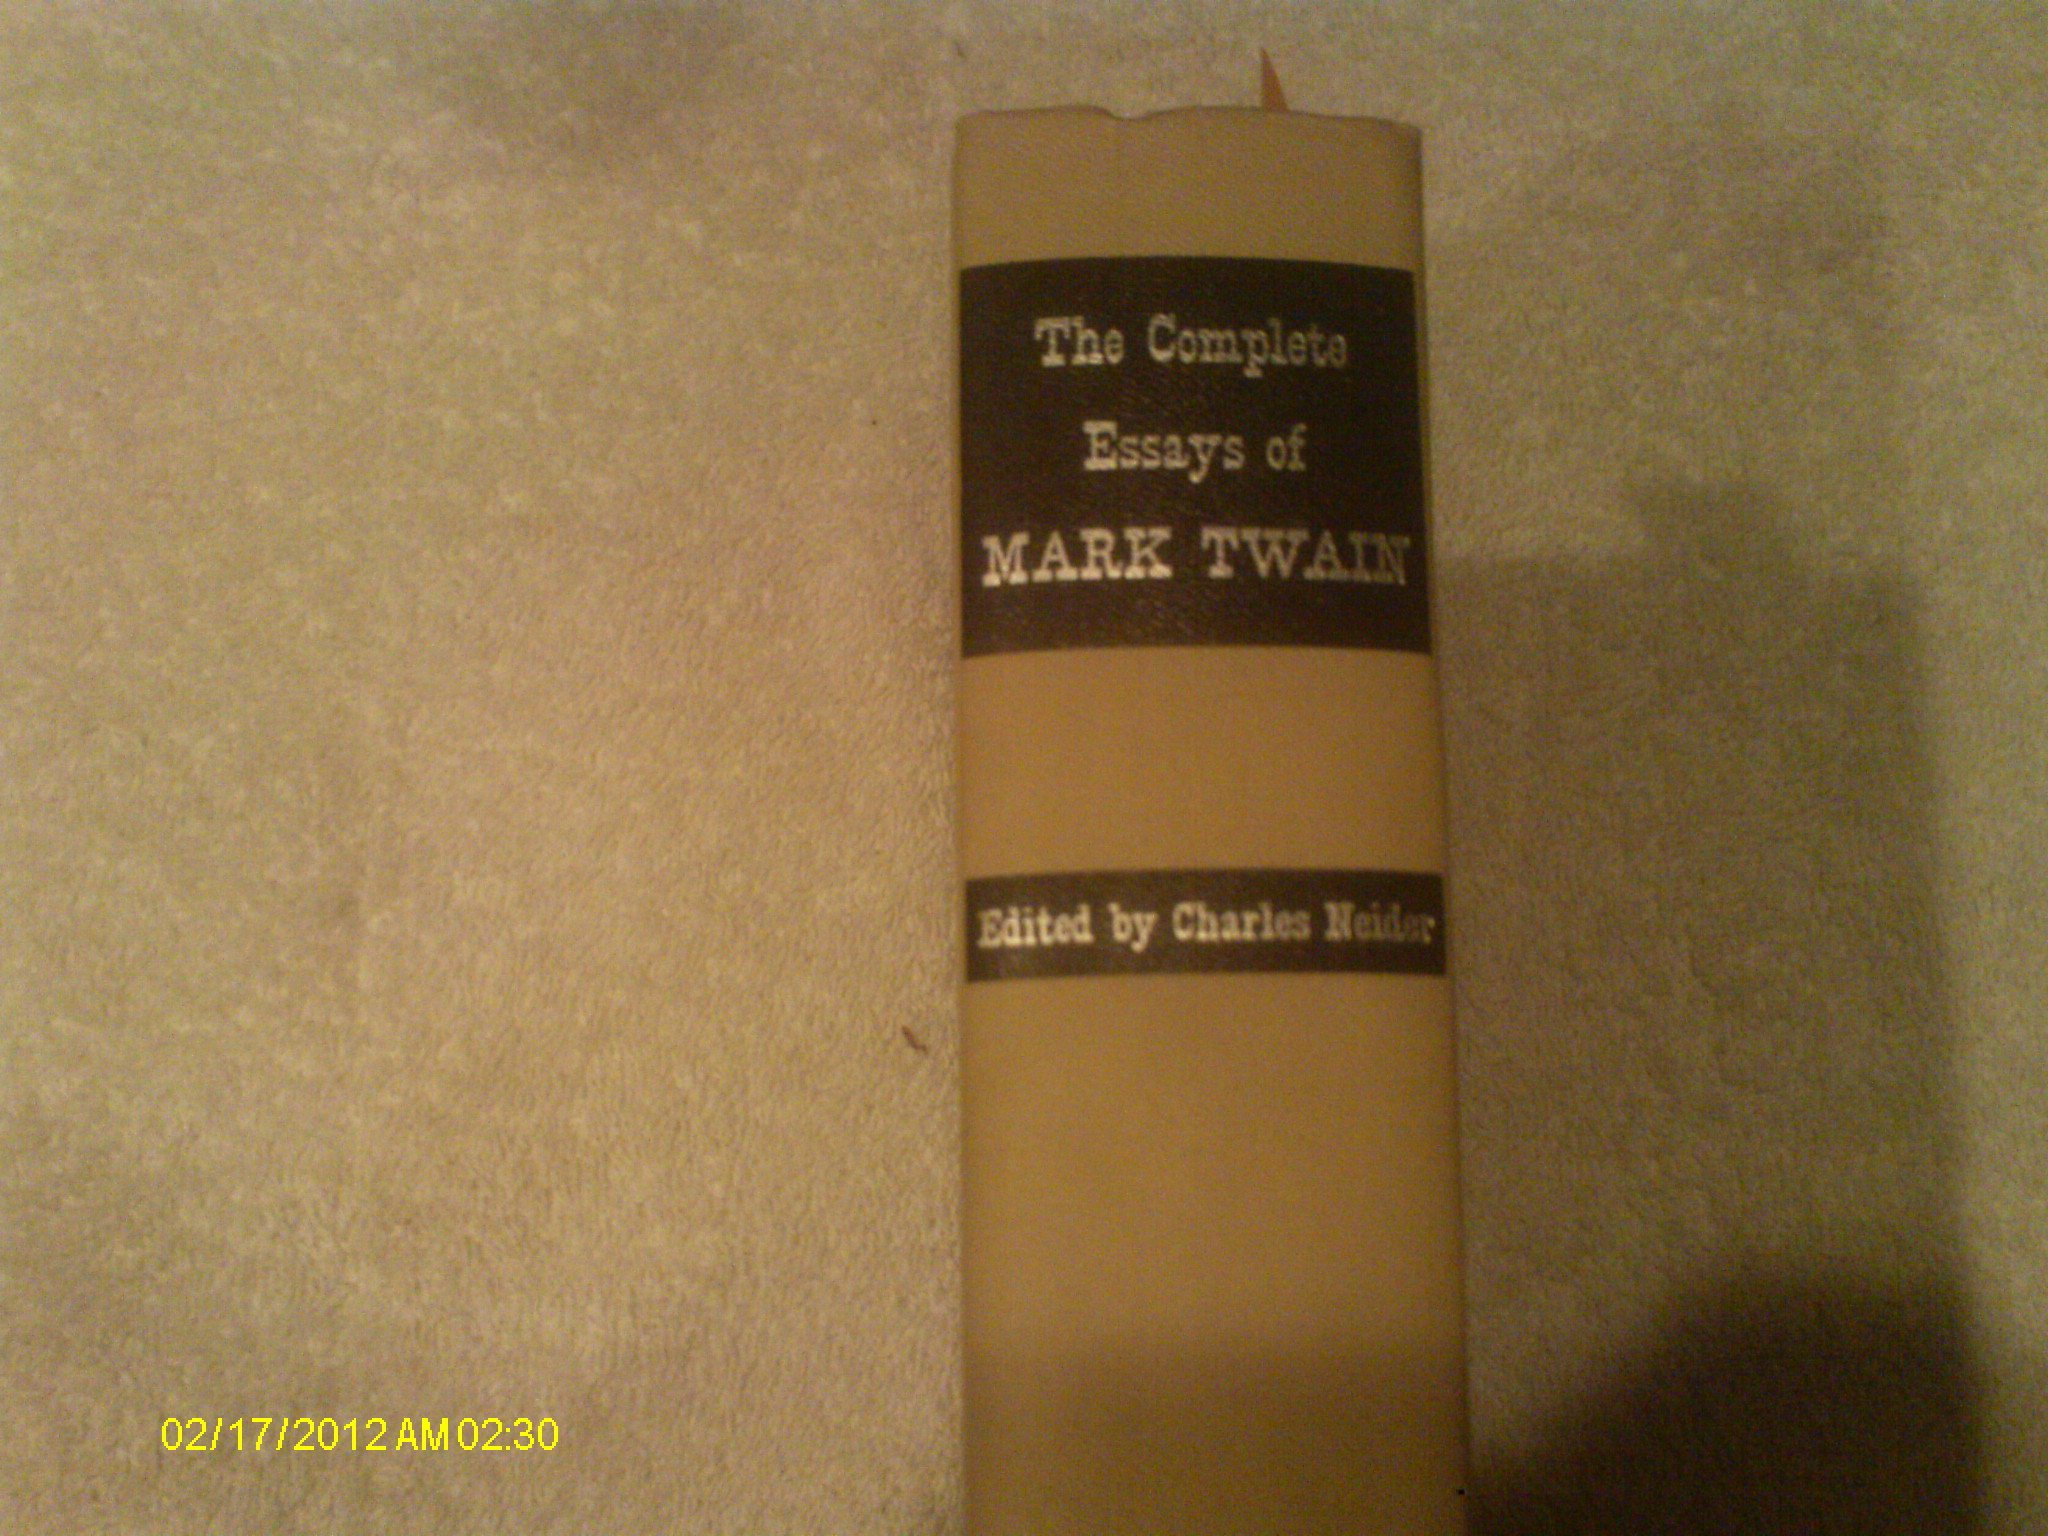 the complete essays of mark twain ed by charles neider mark the complete essays of mark twain ed by charles neider mark neider charles ed twain mark twain com books